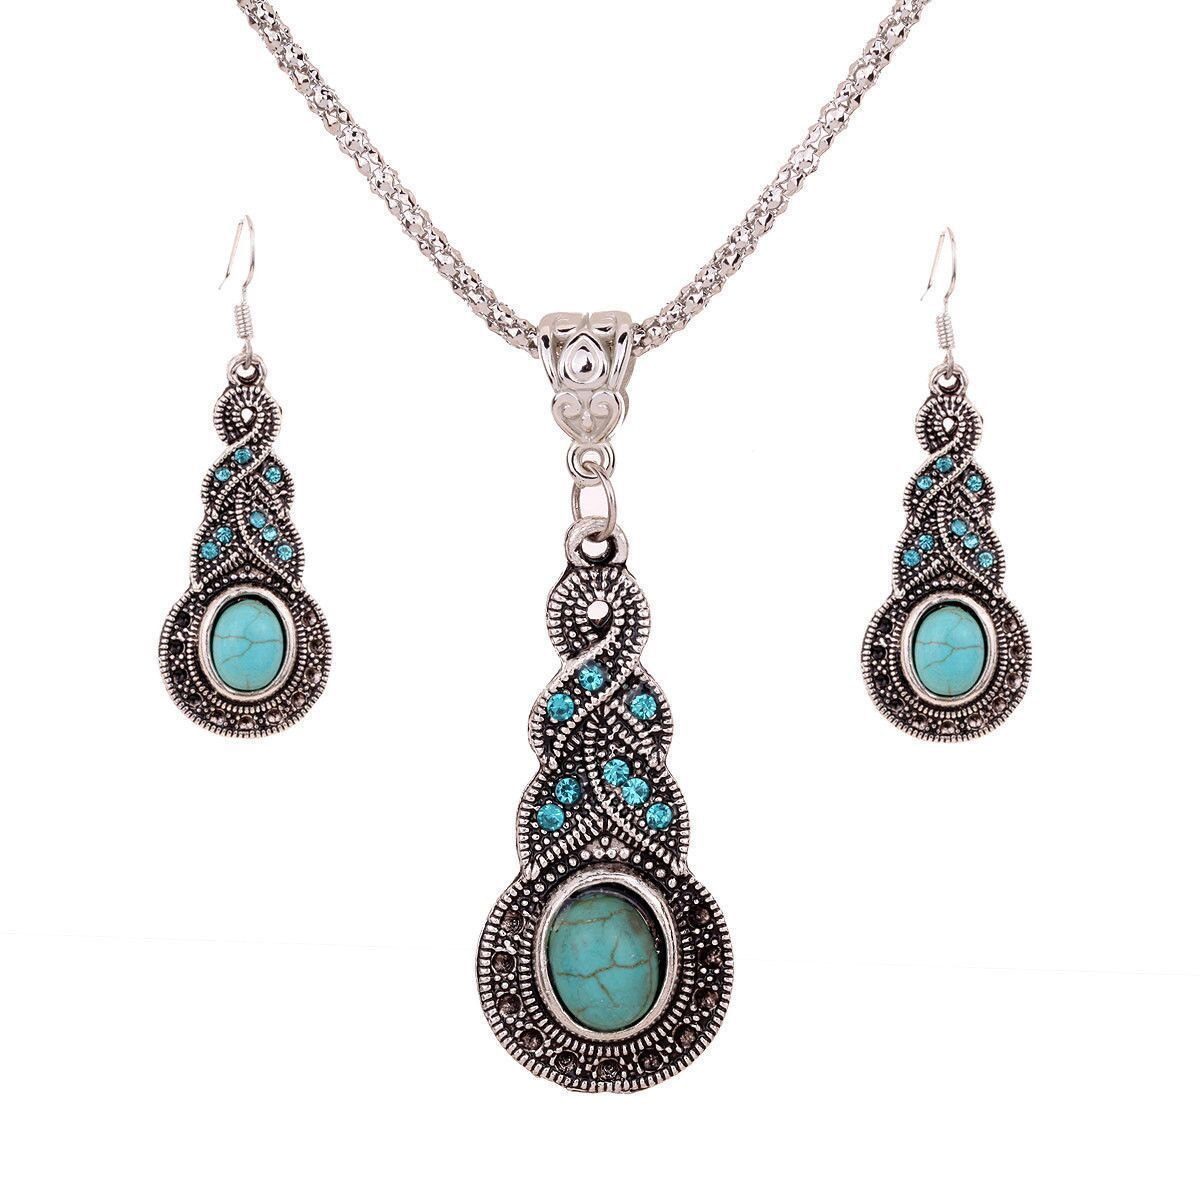 Fashion Jewelry Necklace Tears Retro Ethnic Necklace Set Wholesale Crystal Necklace Pendantintothea-intothea